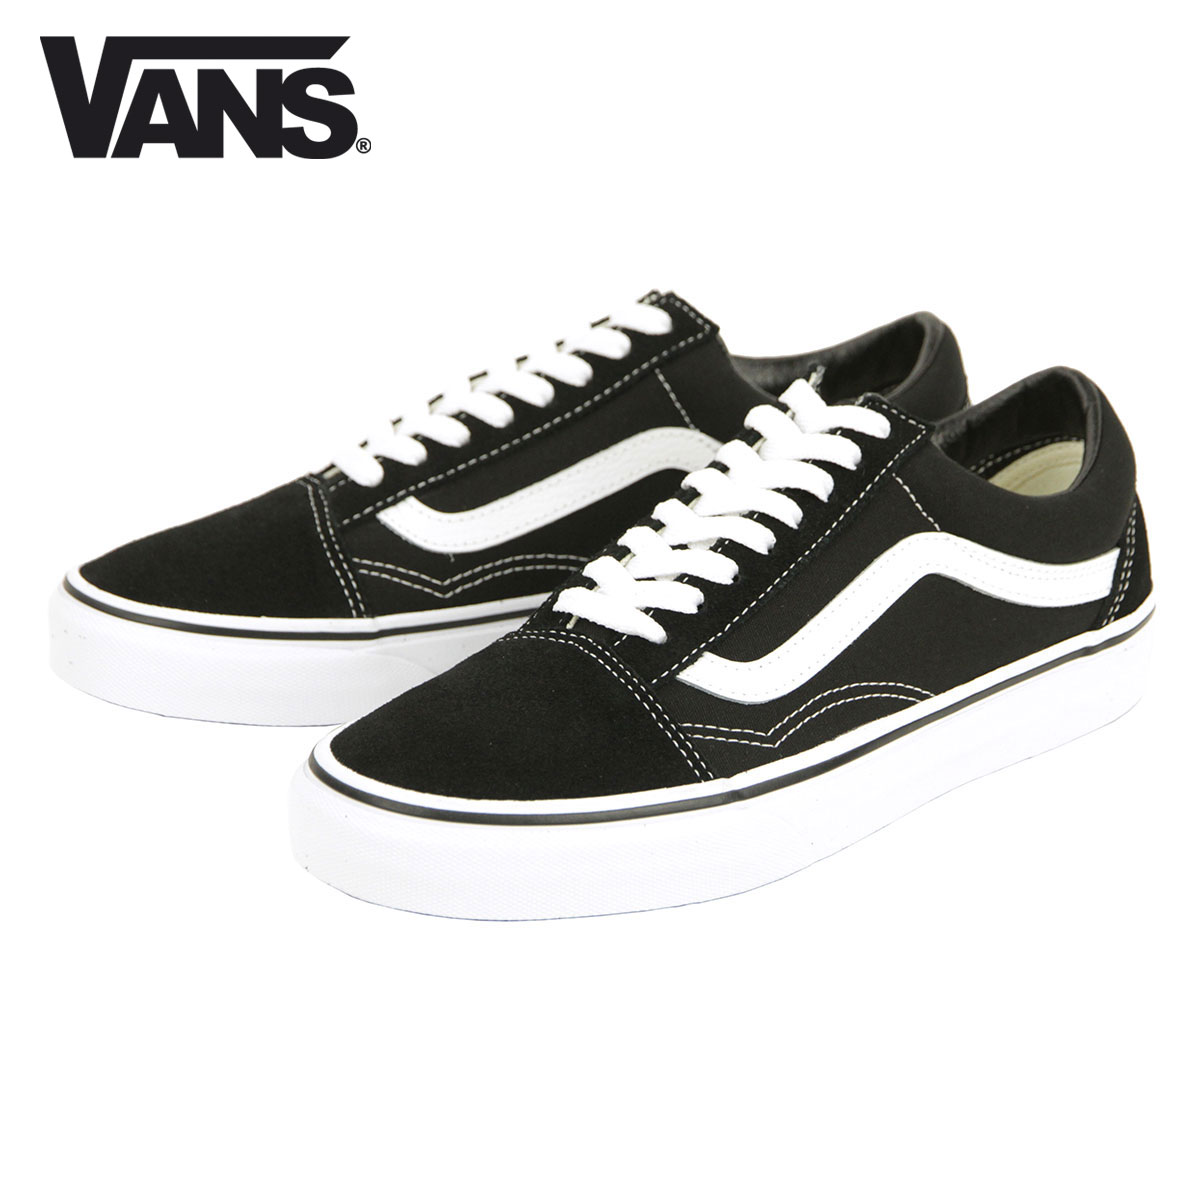 where to buy vans shoes in stores